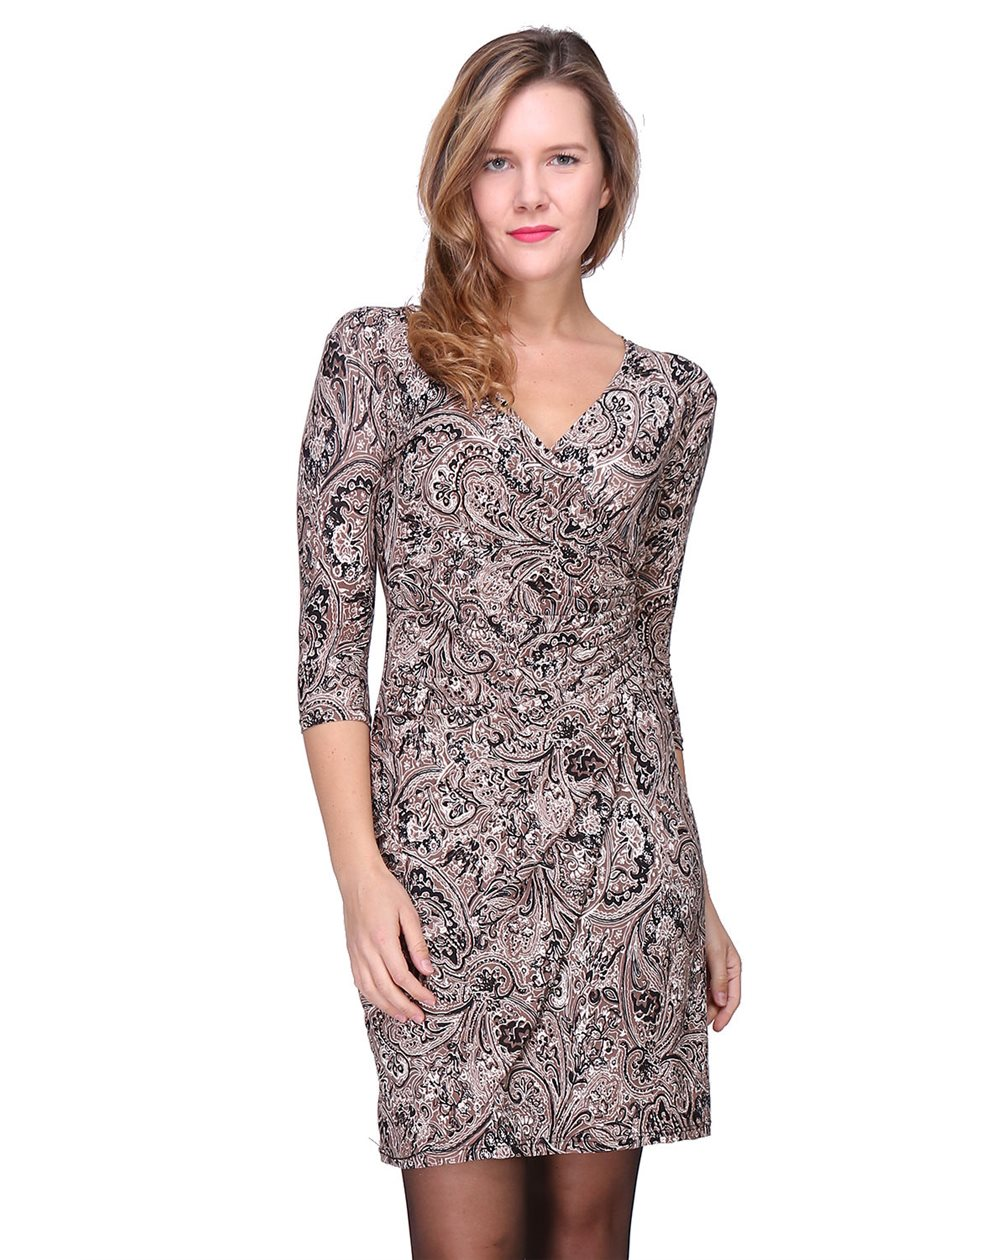 Pour Femme Cache Coeur Made Myriam Robe Col Longues Revdelle V France In Manches q34Aj5RL